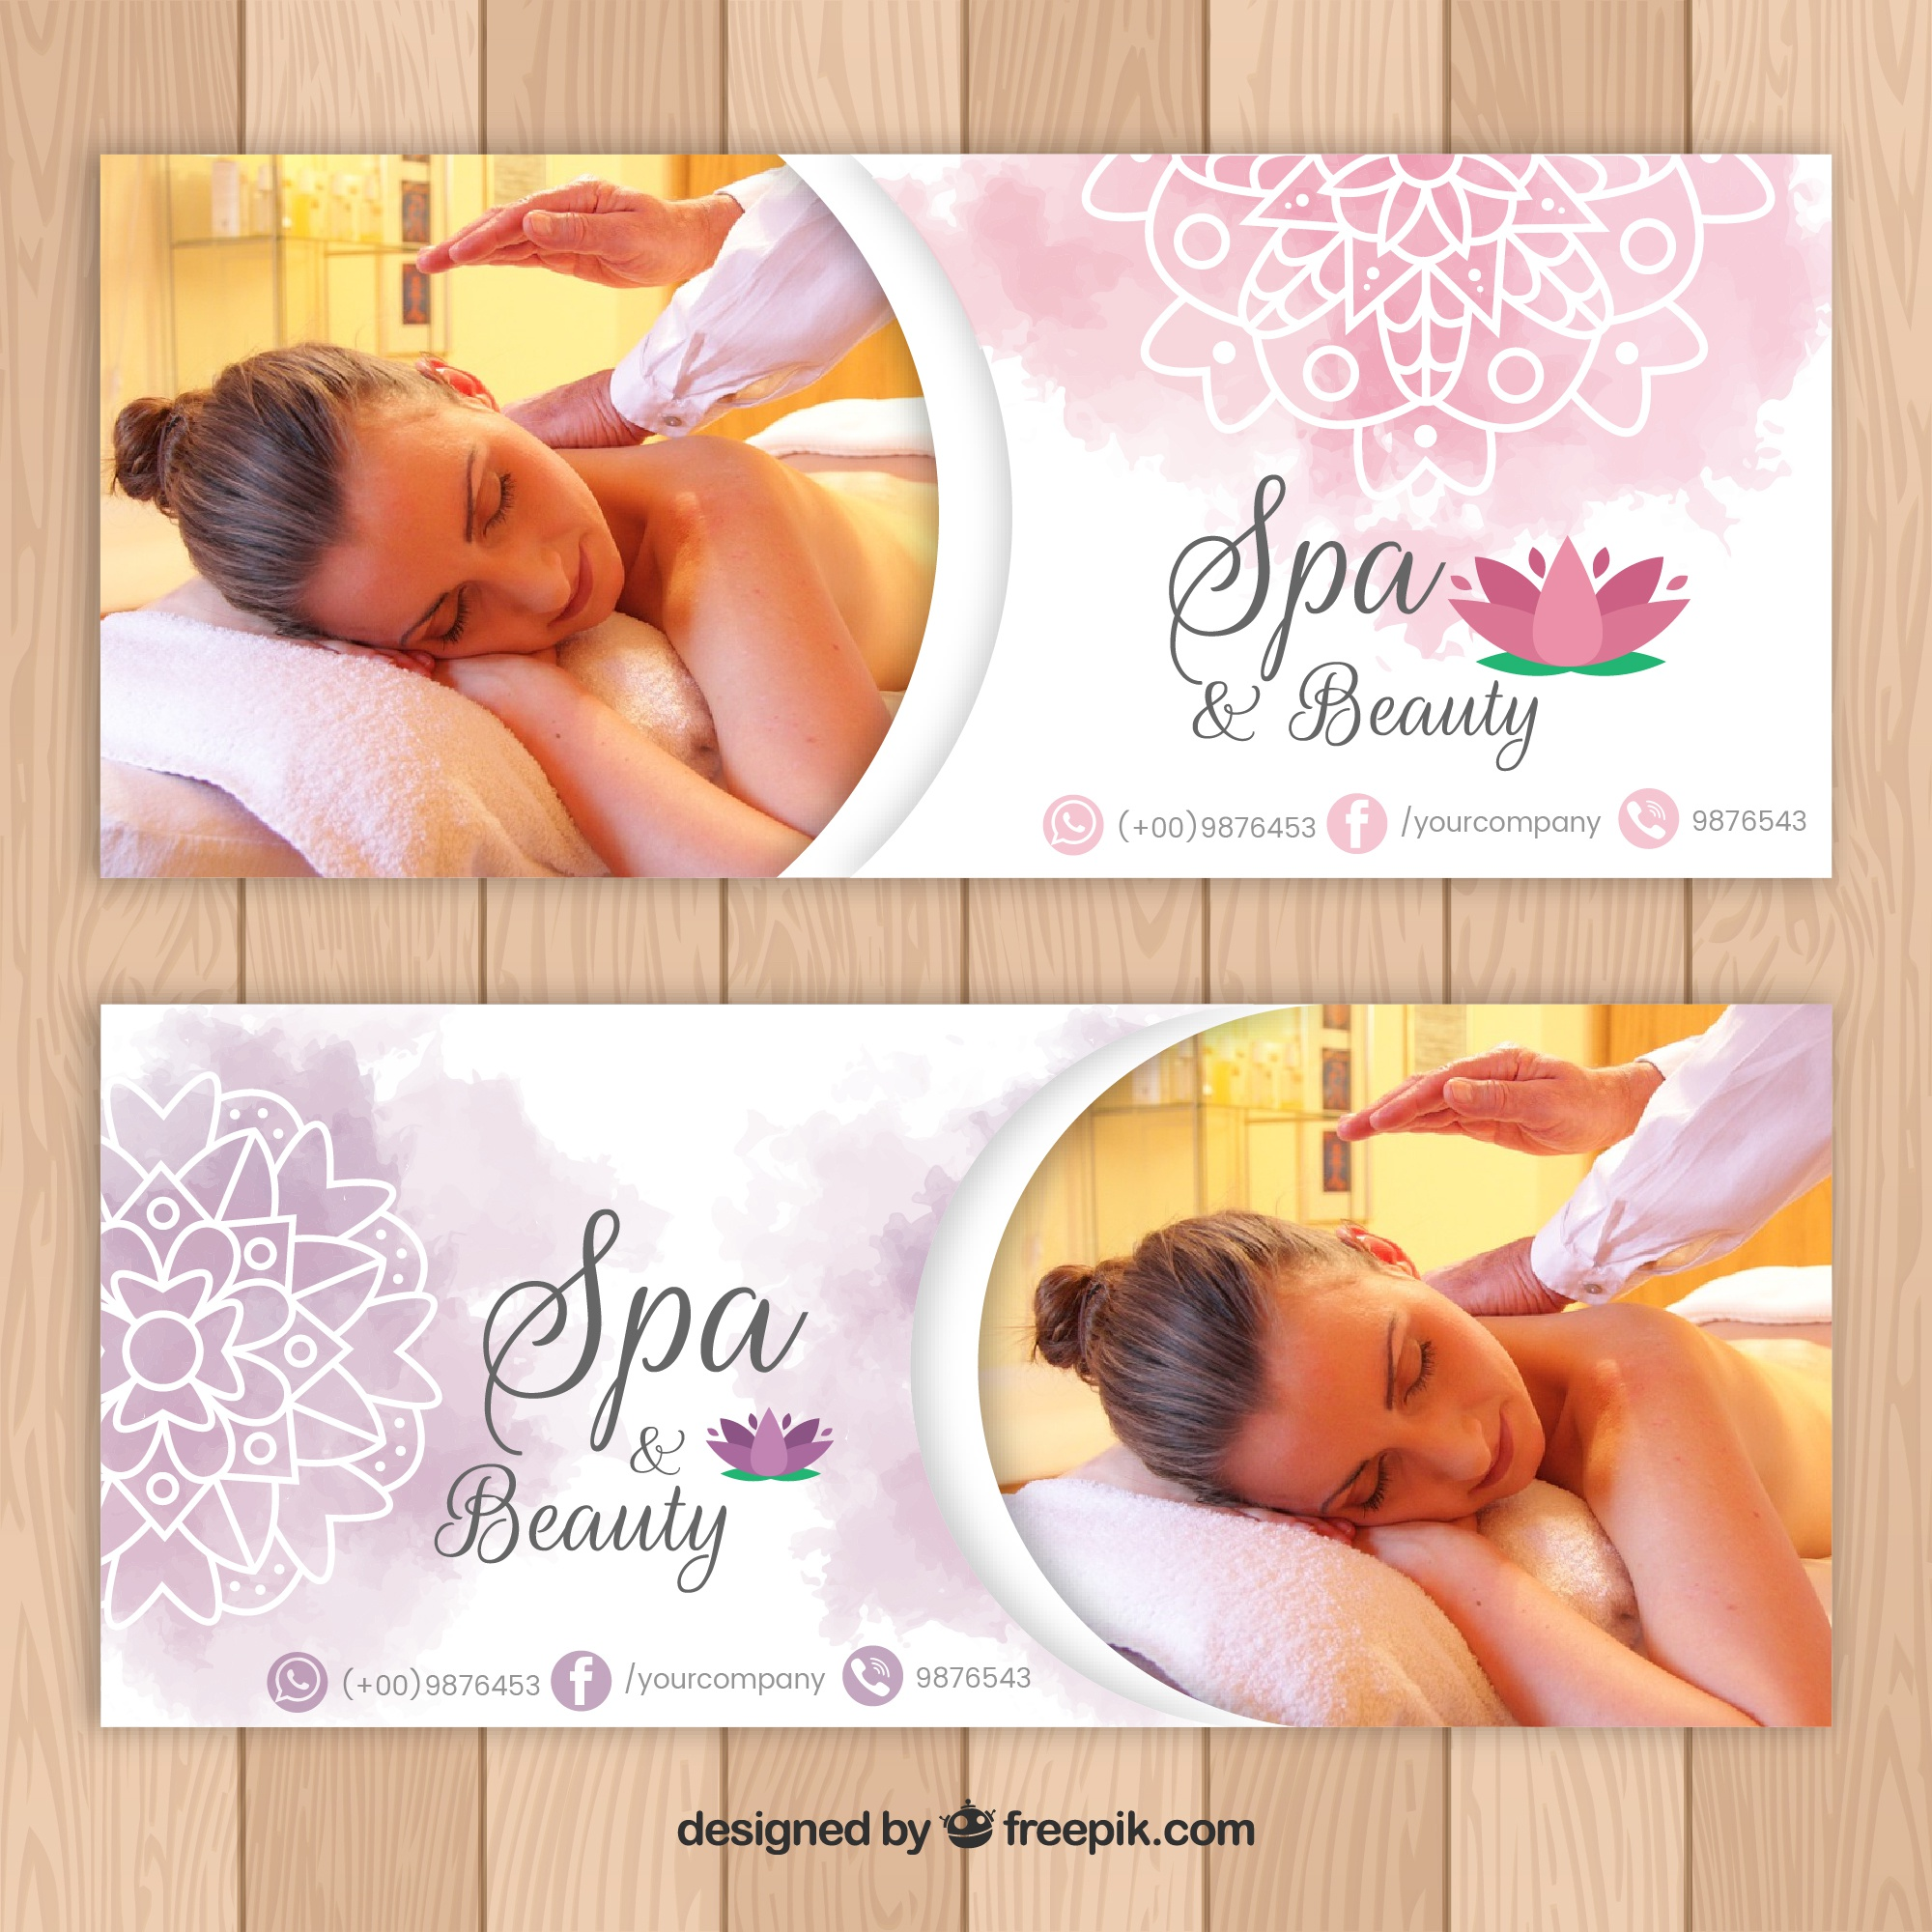 Spa salon banners with a photo